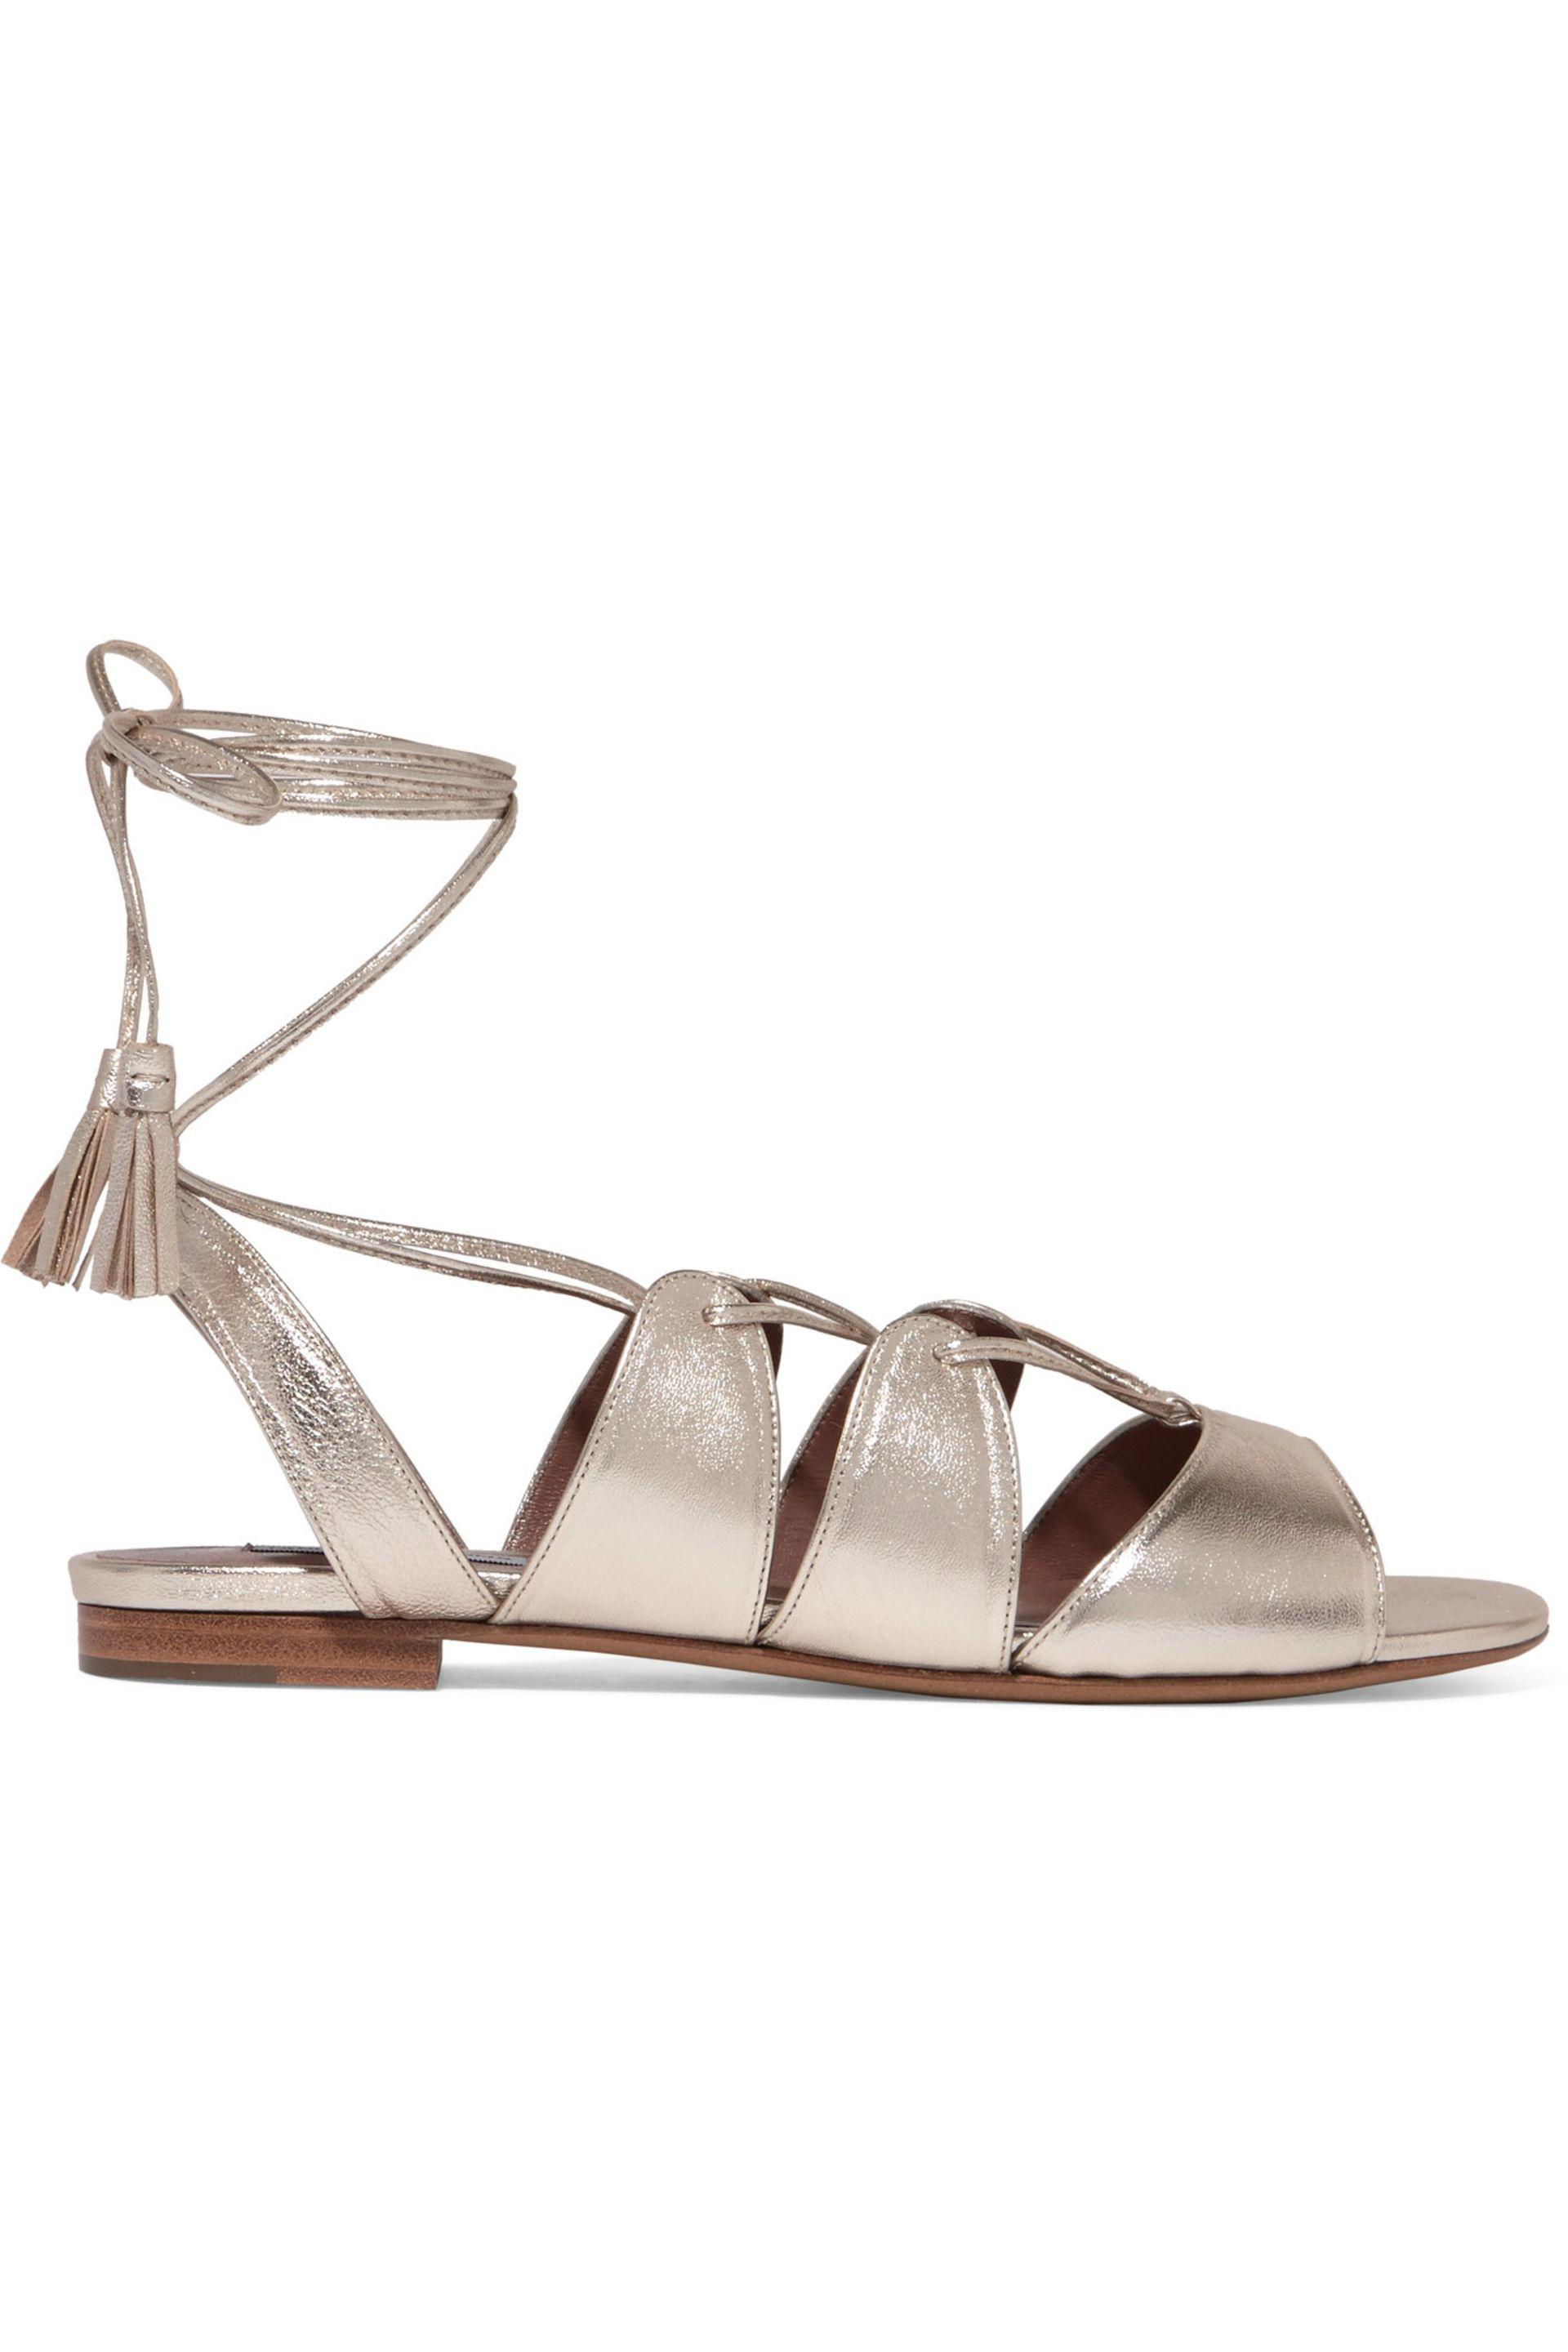 Tabitha Simmons Metallic Lace-Up Sandals low price sale order for cheap online online cheap authentic XzV3qH